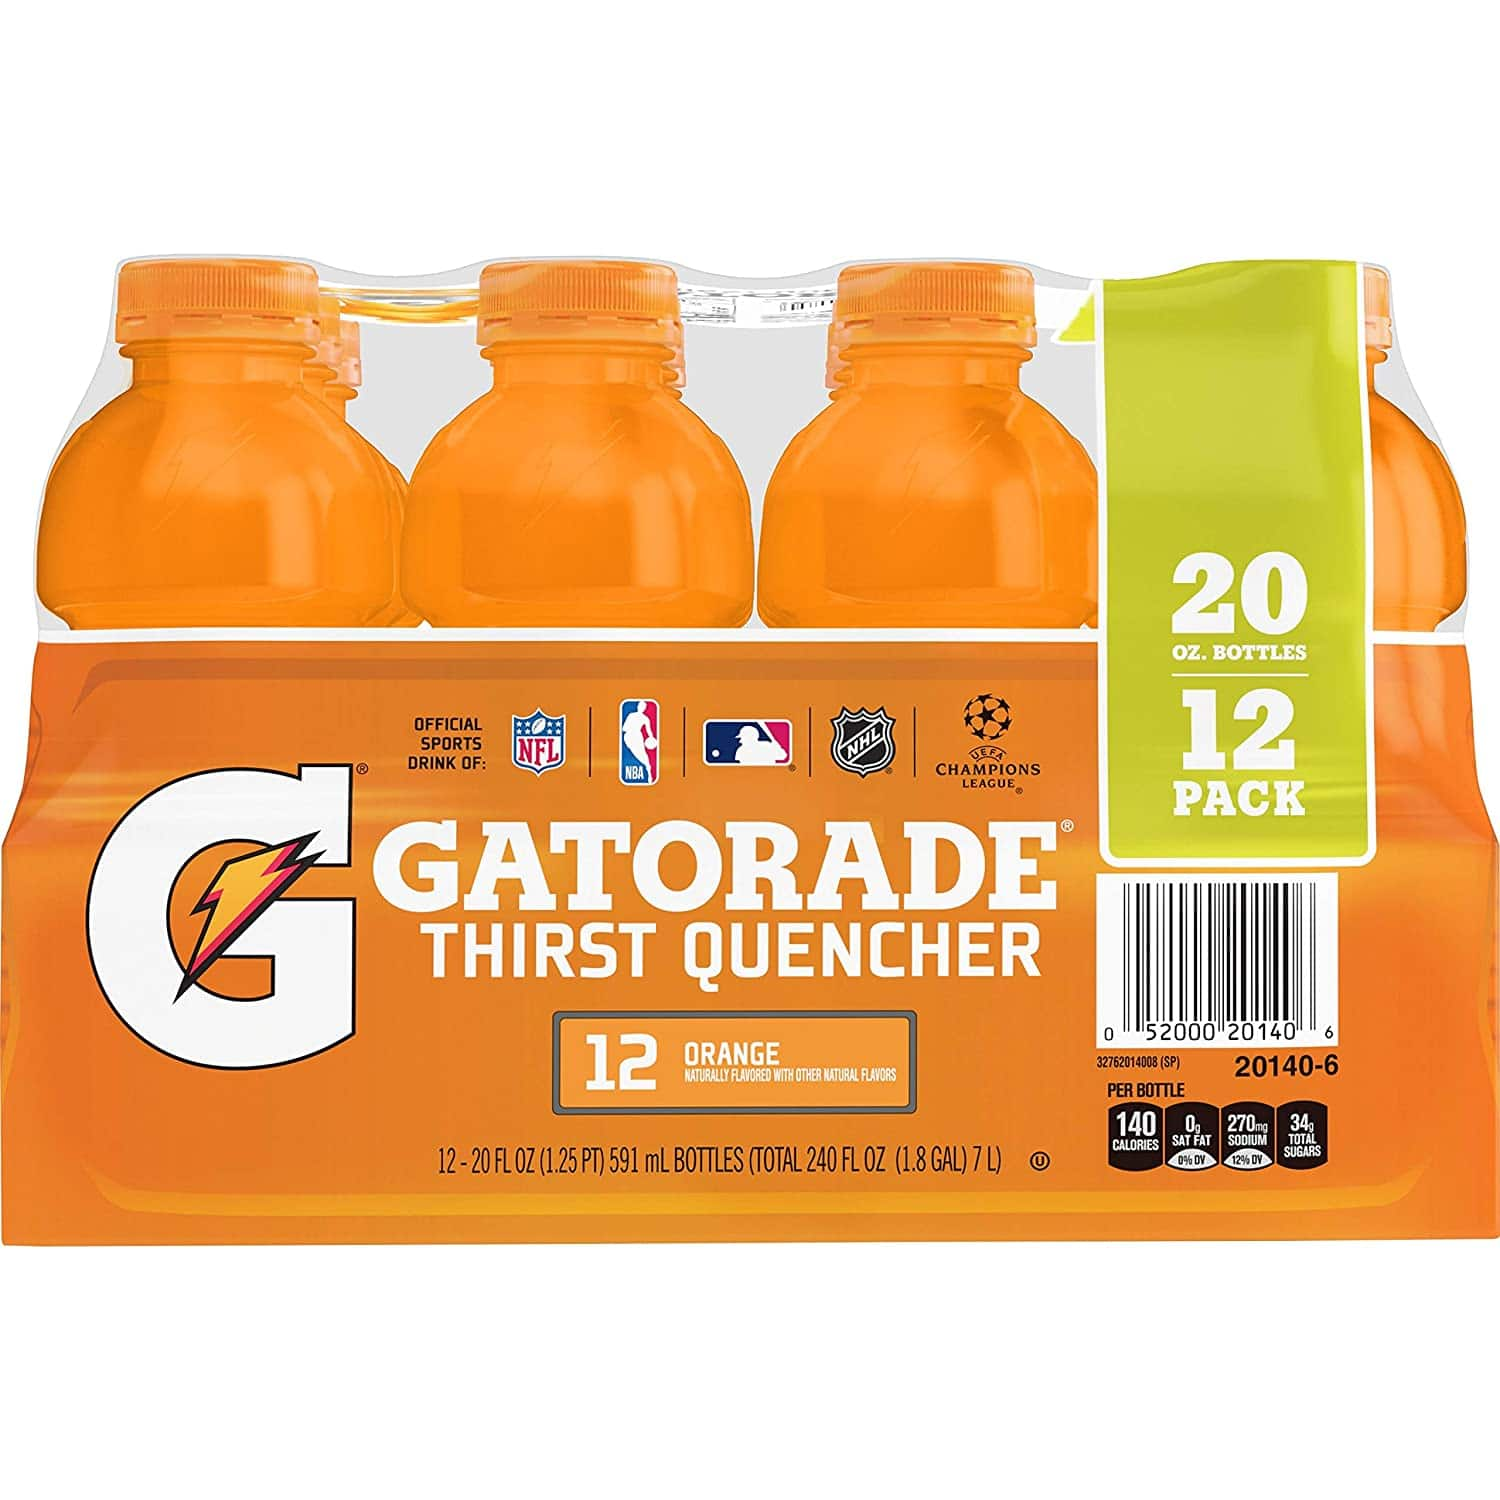 12-Pack 20-Oz Gatorade Thirst Quencher (Fruit Punch, Orange, Lemon-Lime) $7.10 w/ S&S + Free Shipping w/ Prime or on $25+